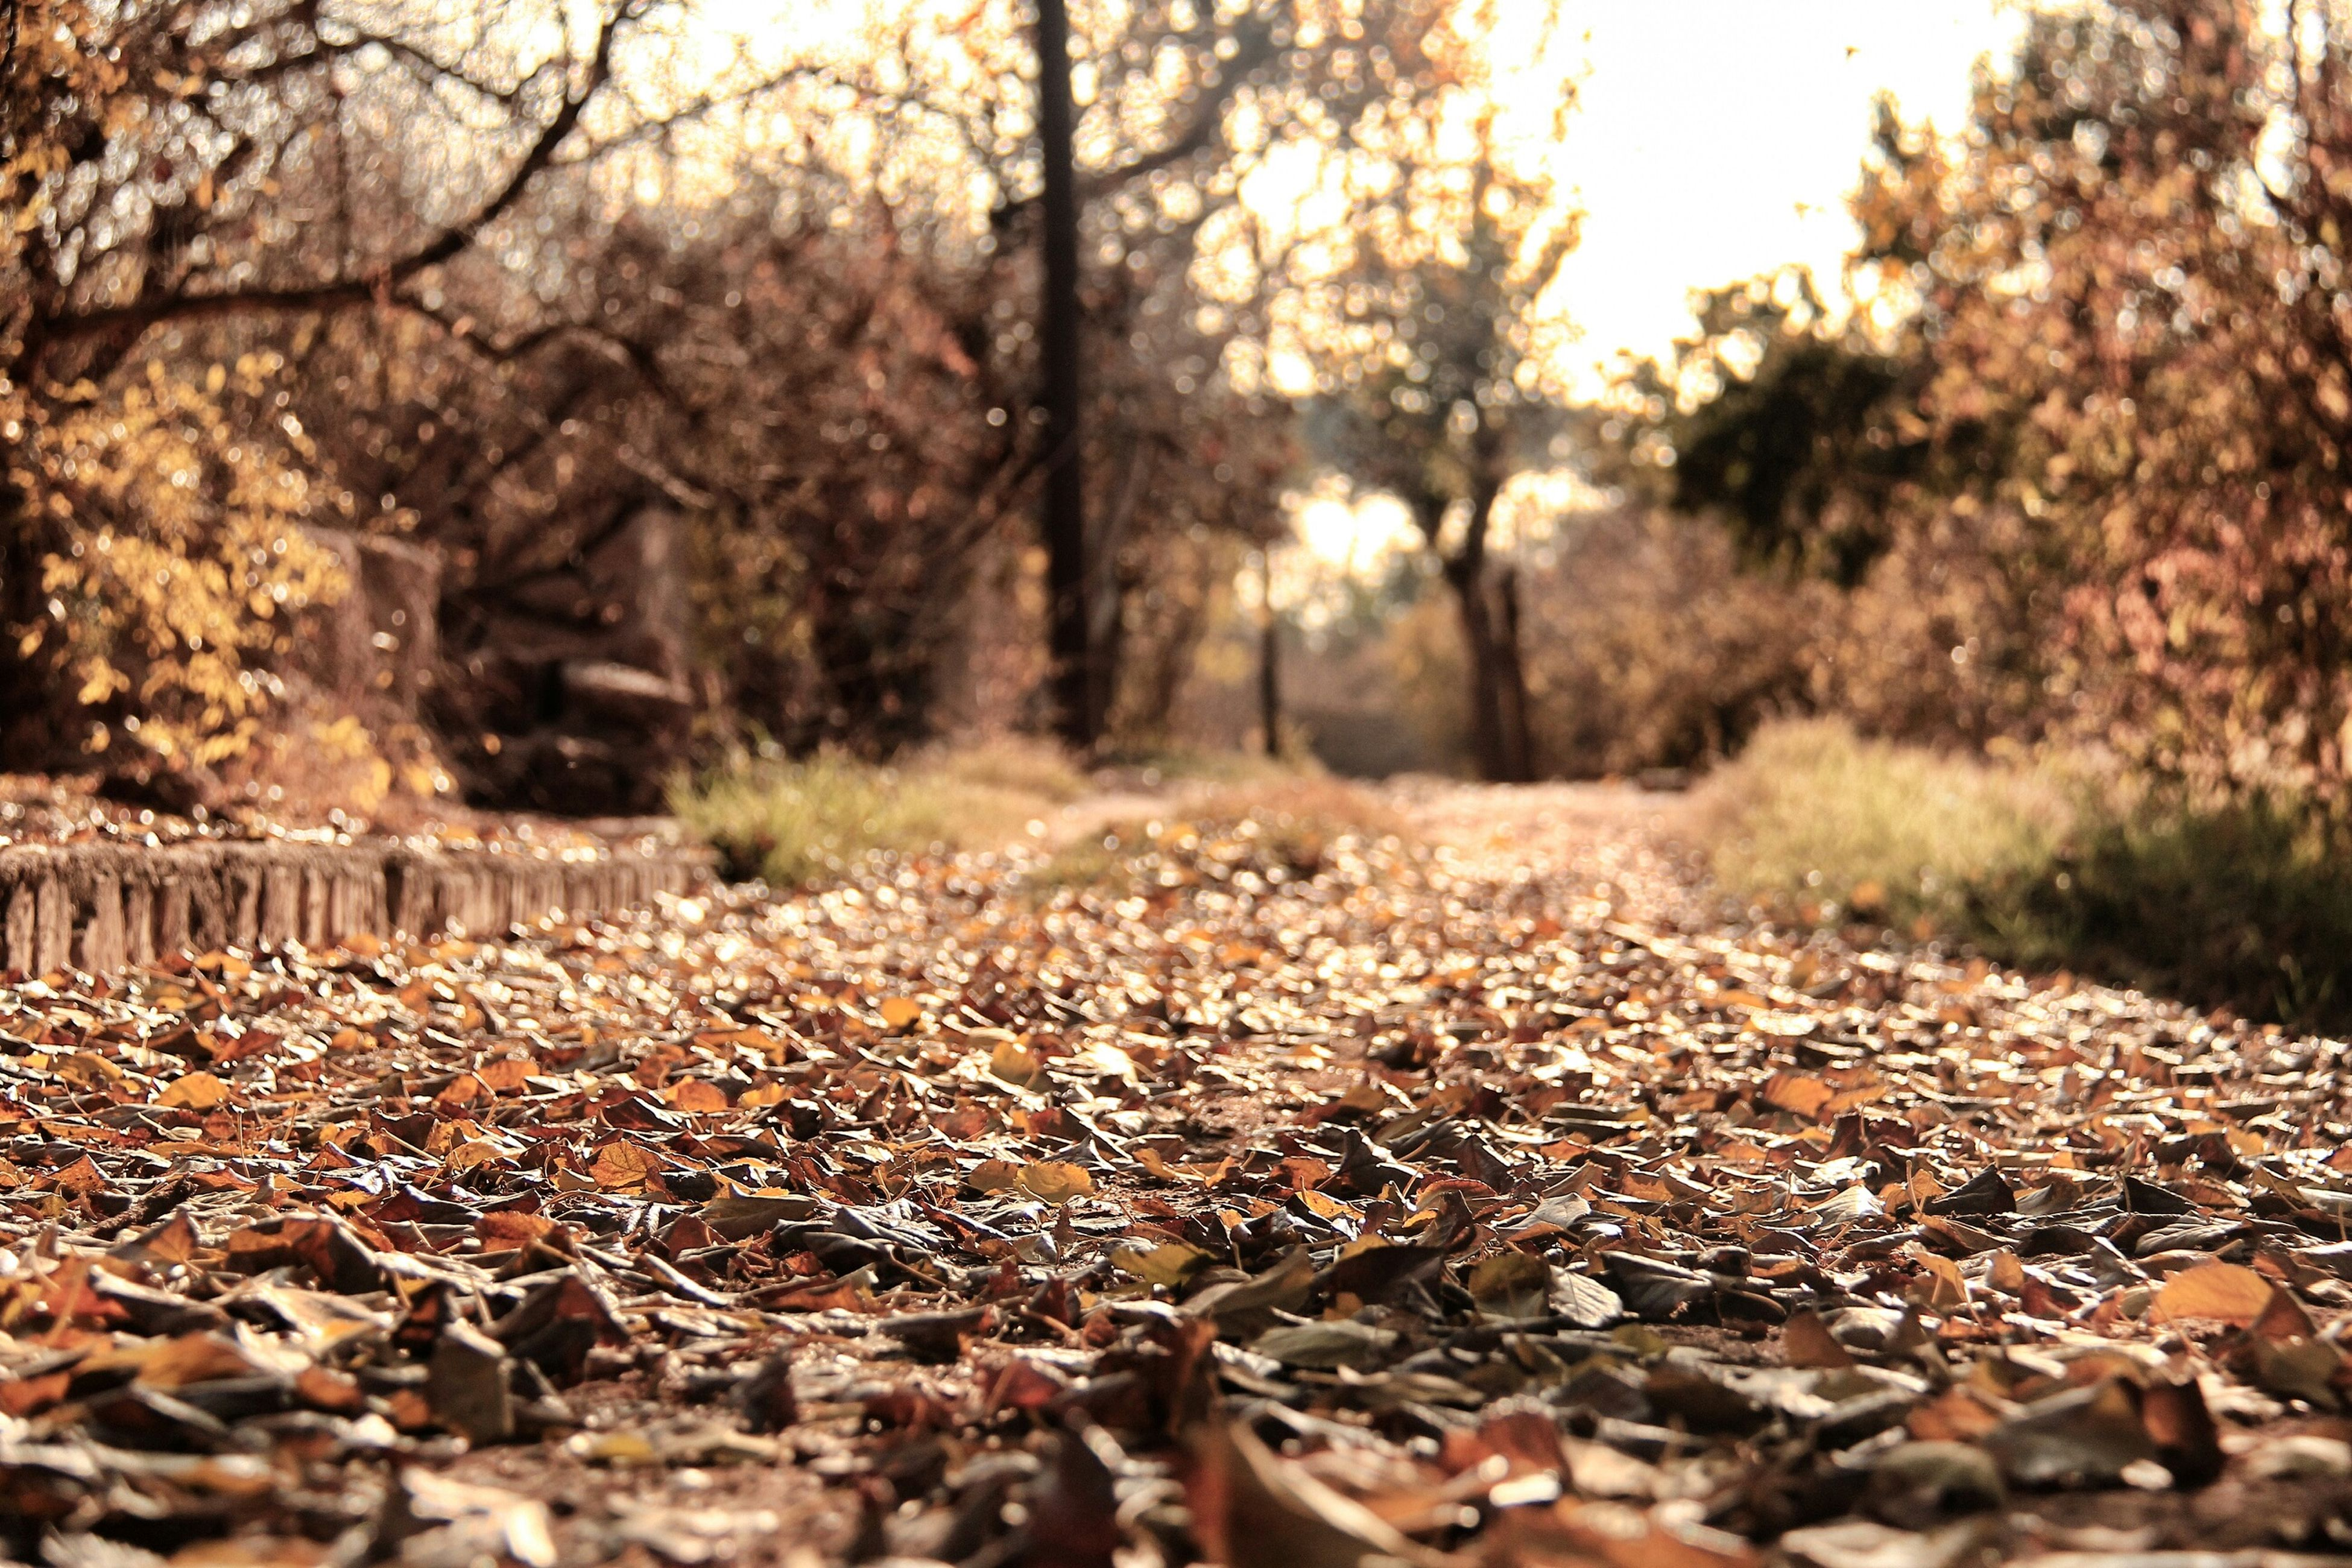 tree, surface level, tranquility, autumn, tranquil scene, forest, nature, leaf, change, fallen, beauty in nature, landscape, selective focus, falling, scenics, growth, dry, stone - object, non-urban scene, day